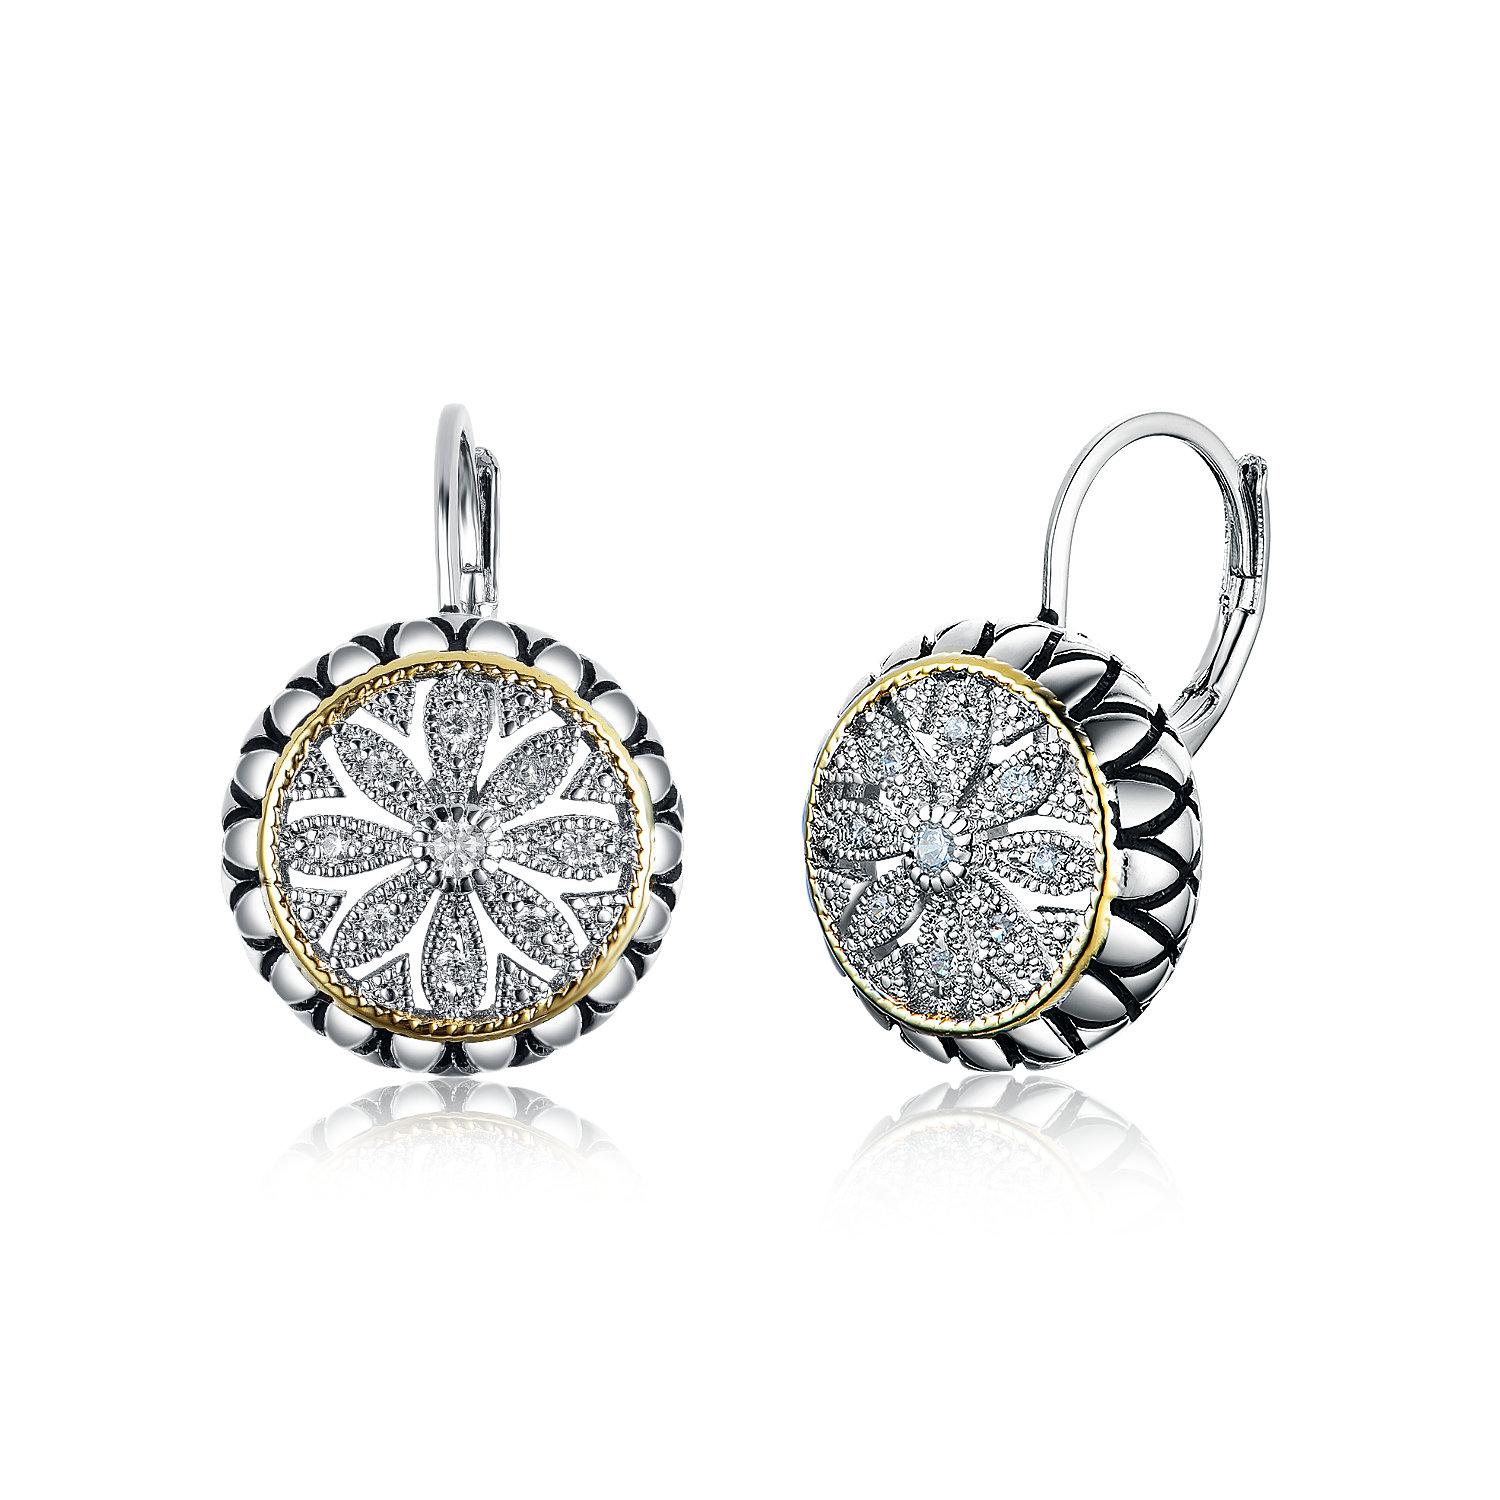 ST2768E-Designer inspired Two-tone Round Leverback Earring with diamond shape texture in brass from China reliable jewelry factory Vendor